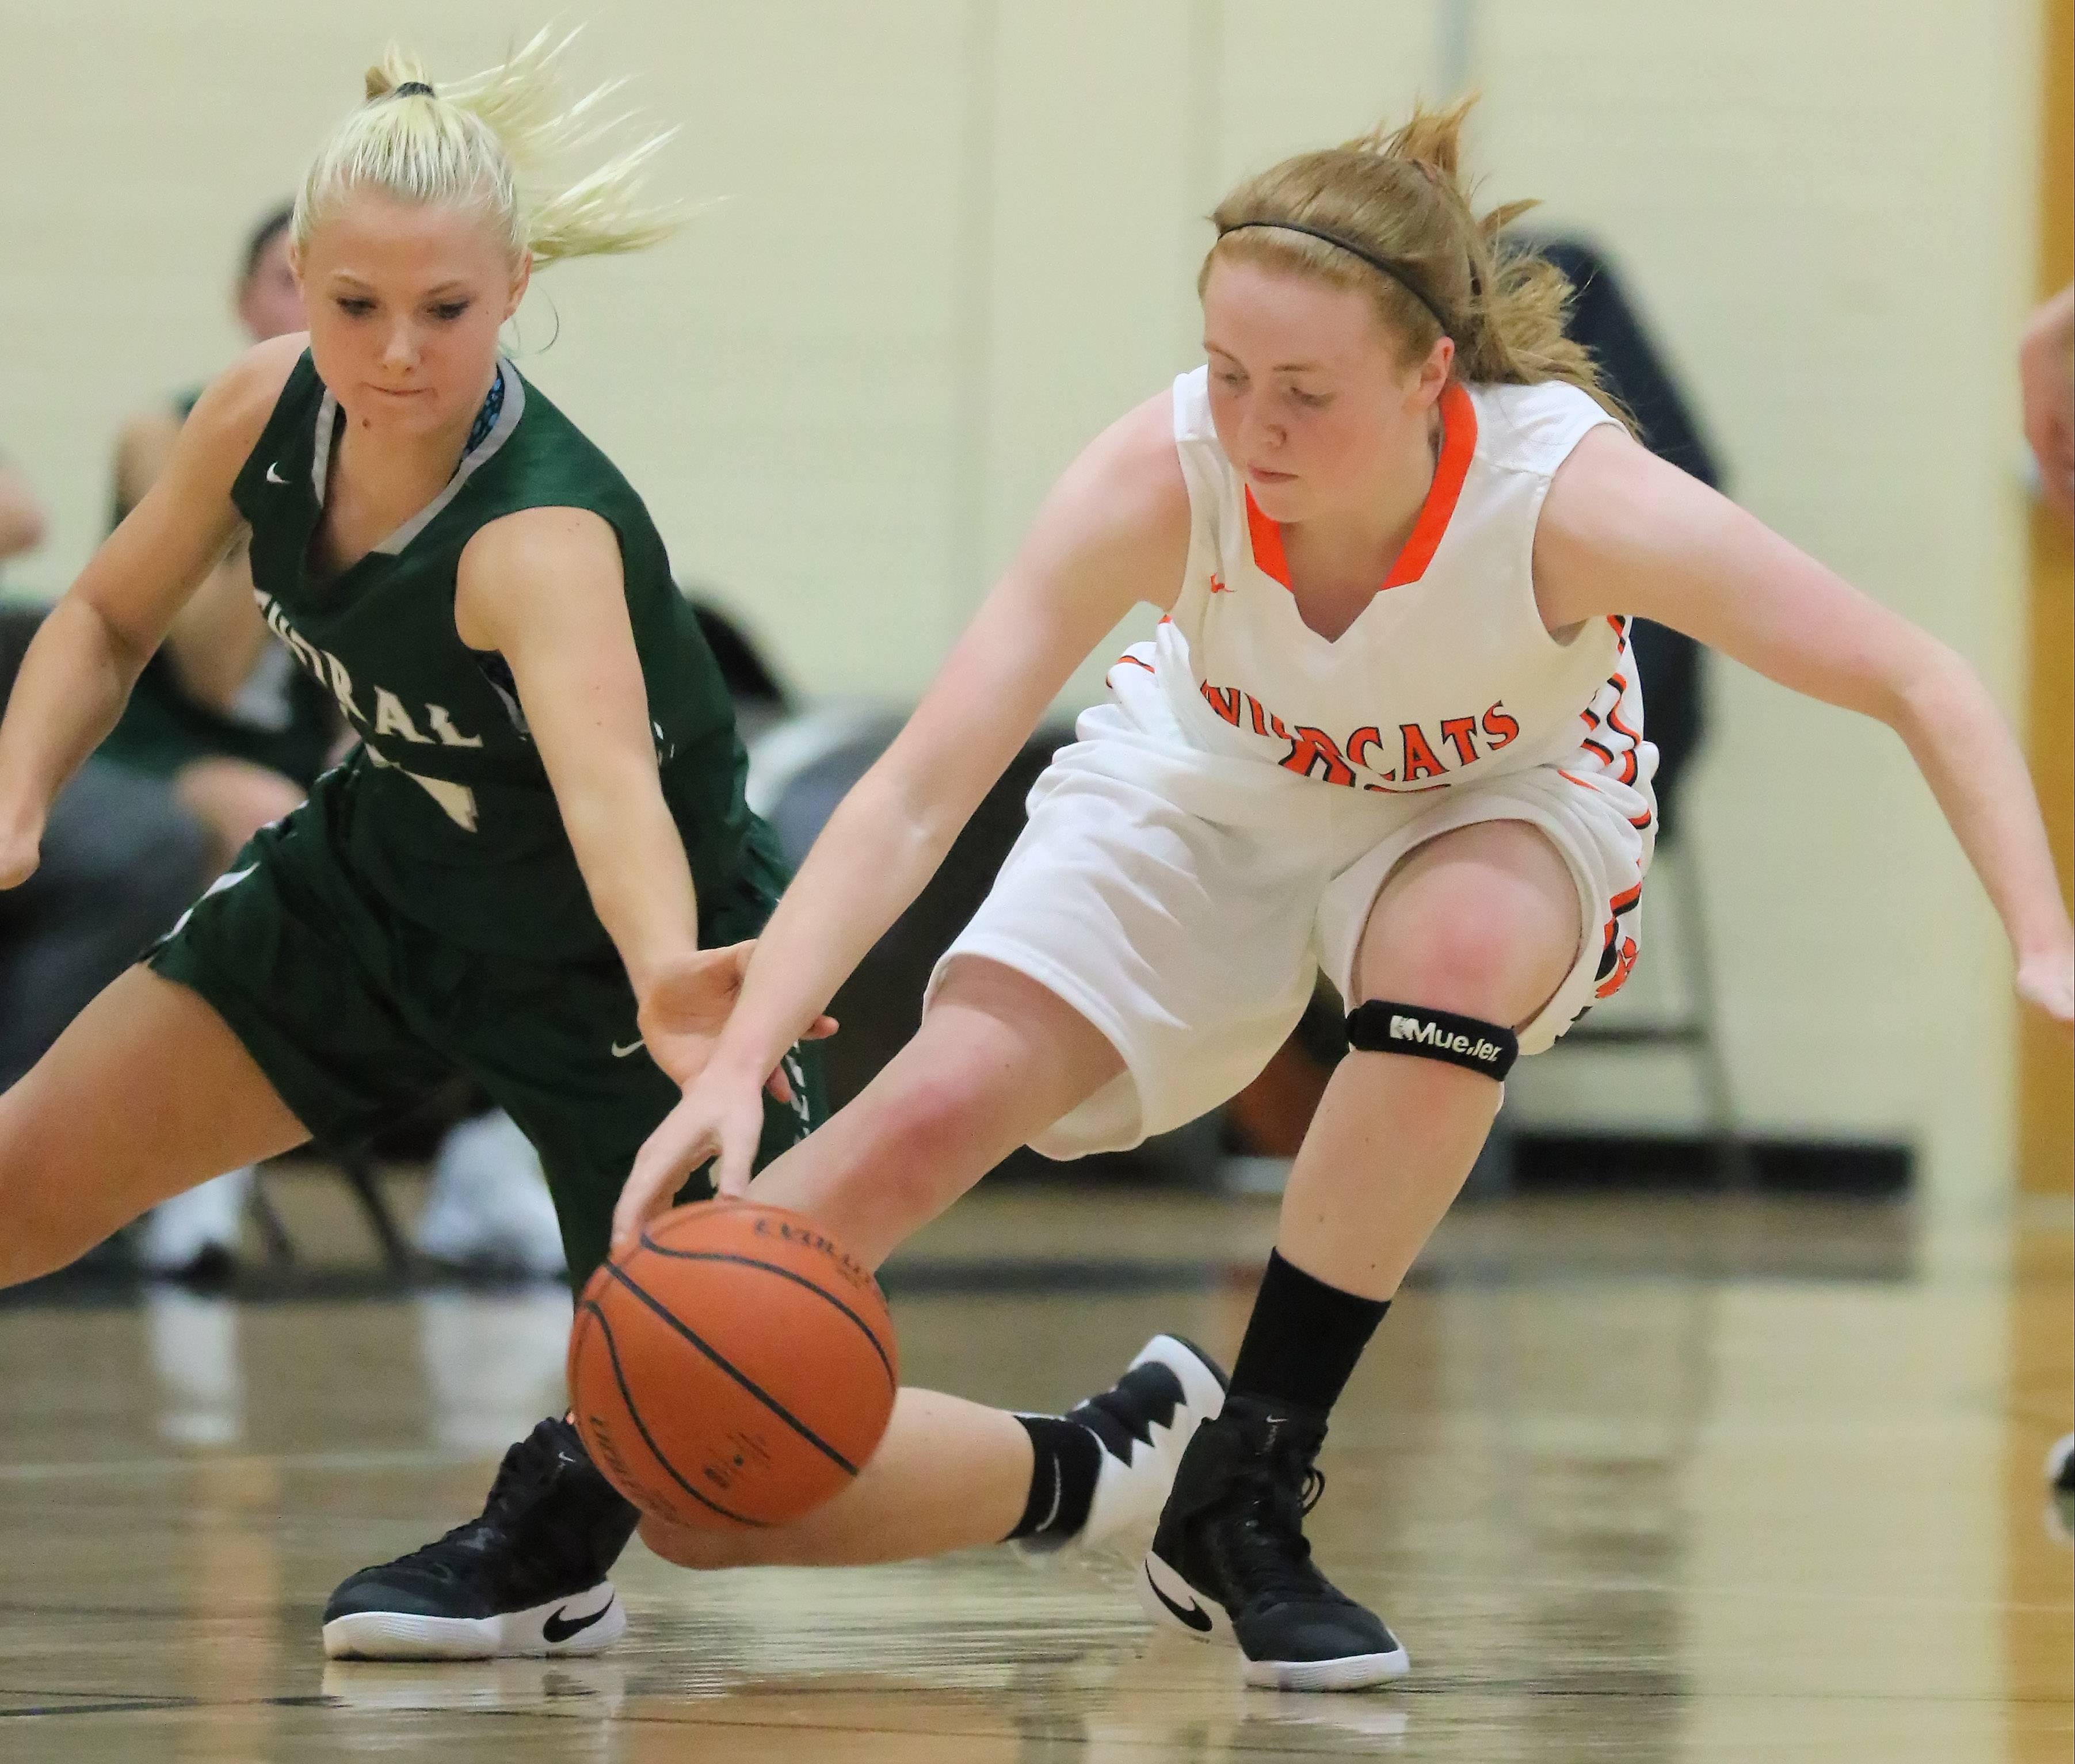 Grayslake Central's Payton Gosell, left, and Libertyville's Lydia Crow battle for a loose ball Tuesday night at Libertyville.